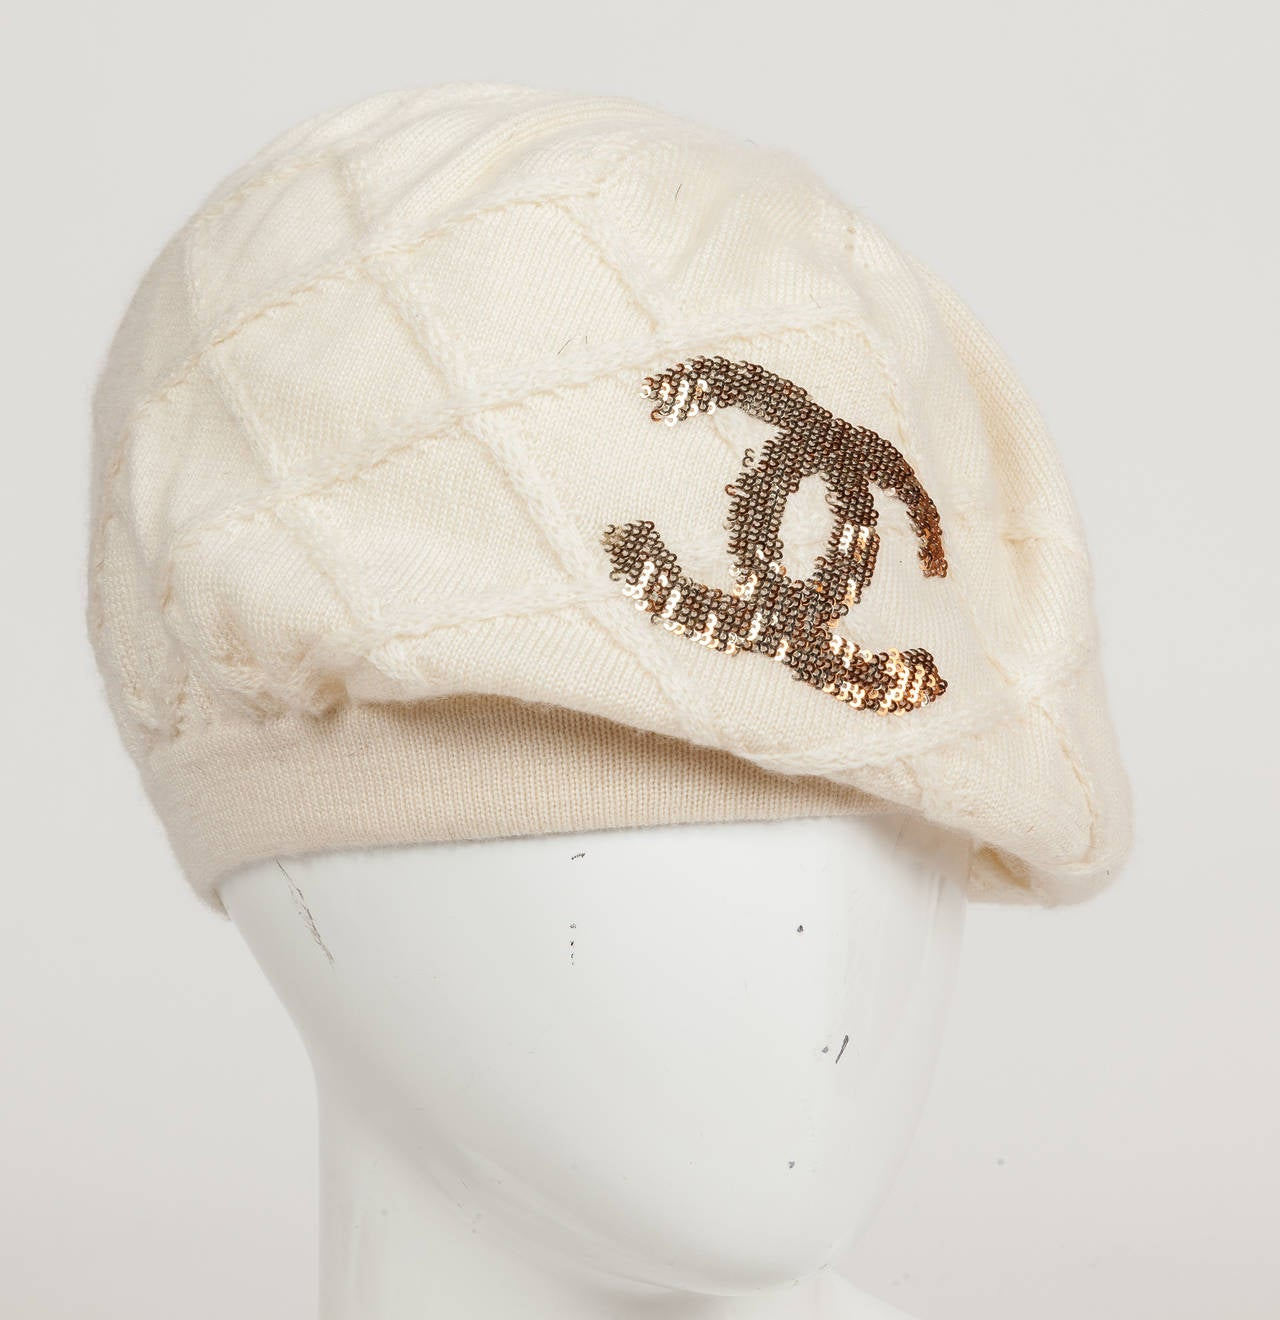 A Chanel 100% cashmere creme-colored beret/hat with a repeated pattern of raised, knitted lattice design and the CC logo embroidered with mini-gold and bronze sequins. The cashmere is incredibly soft, stretchy and the knit is quite small. The hat